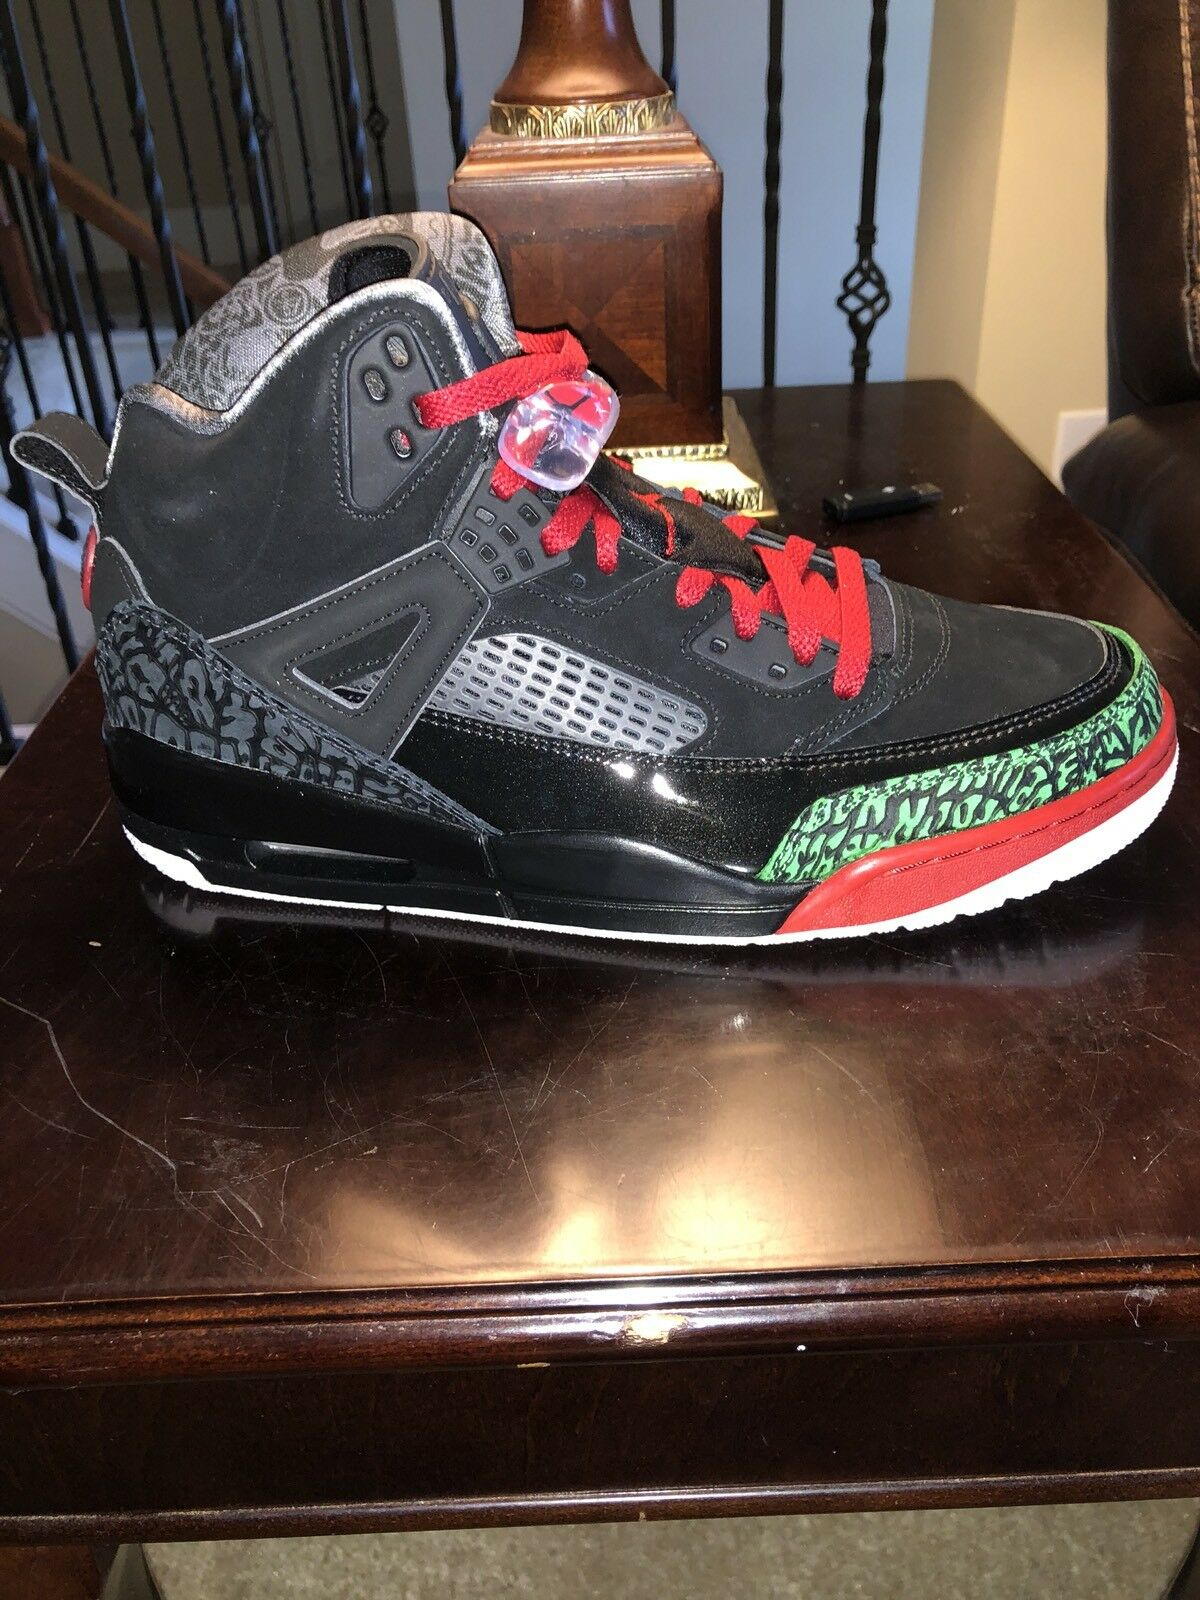 Air Jordan Spizike Black Green Red Varsity White Sz 10 315371-026 Comfortable and good-looking